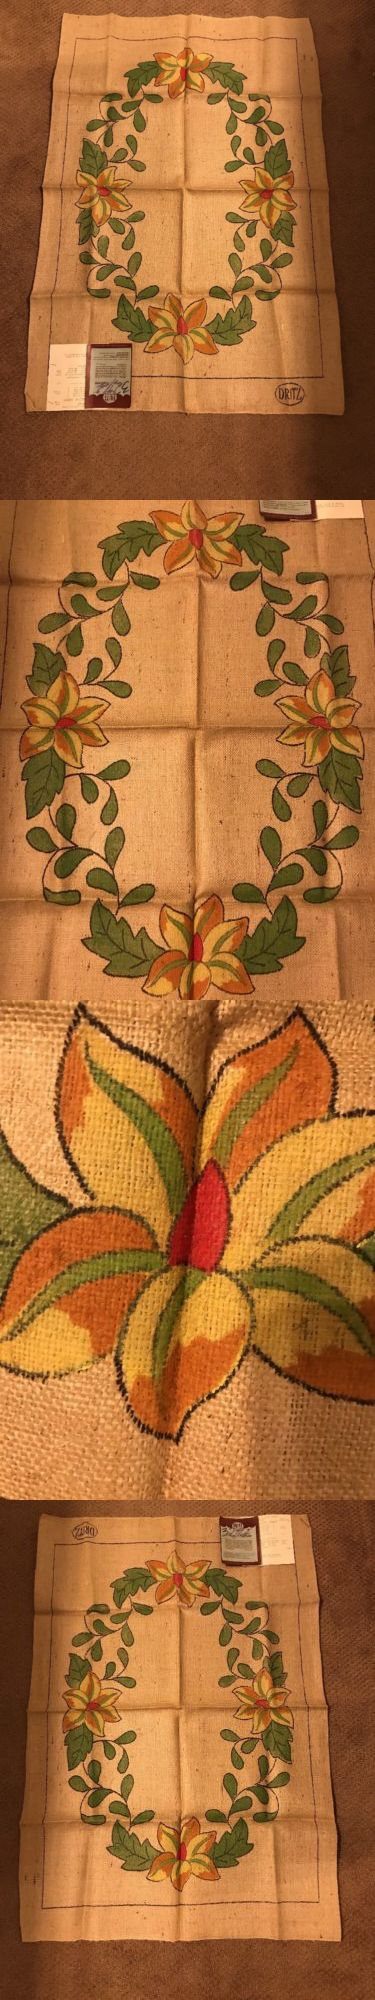 Primitive Hooking Patterns 157031: Hand Tinted Hand Hooking Dritz Floral Lotus Blossom Burlap Rug Pattern 27 X 40 -> BUY IT NOW ONLY: $50 on eBay!